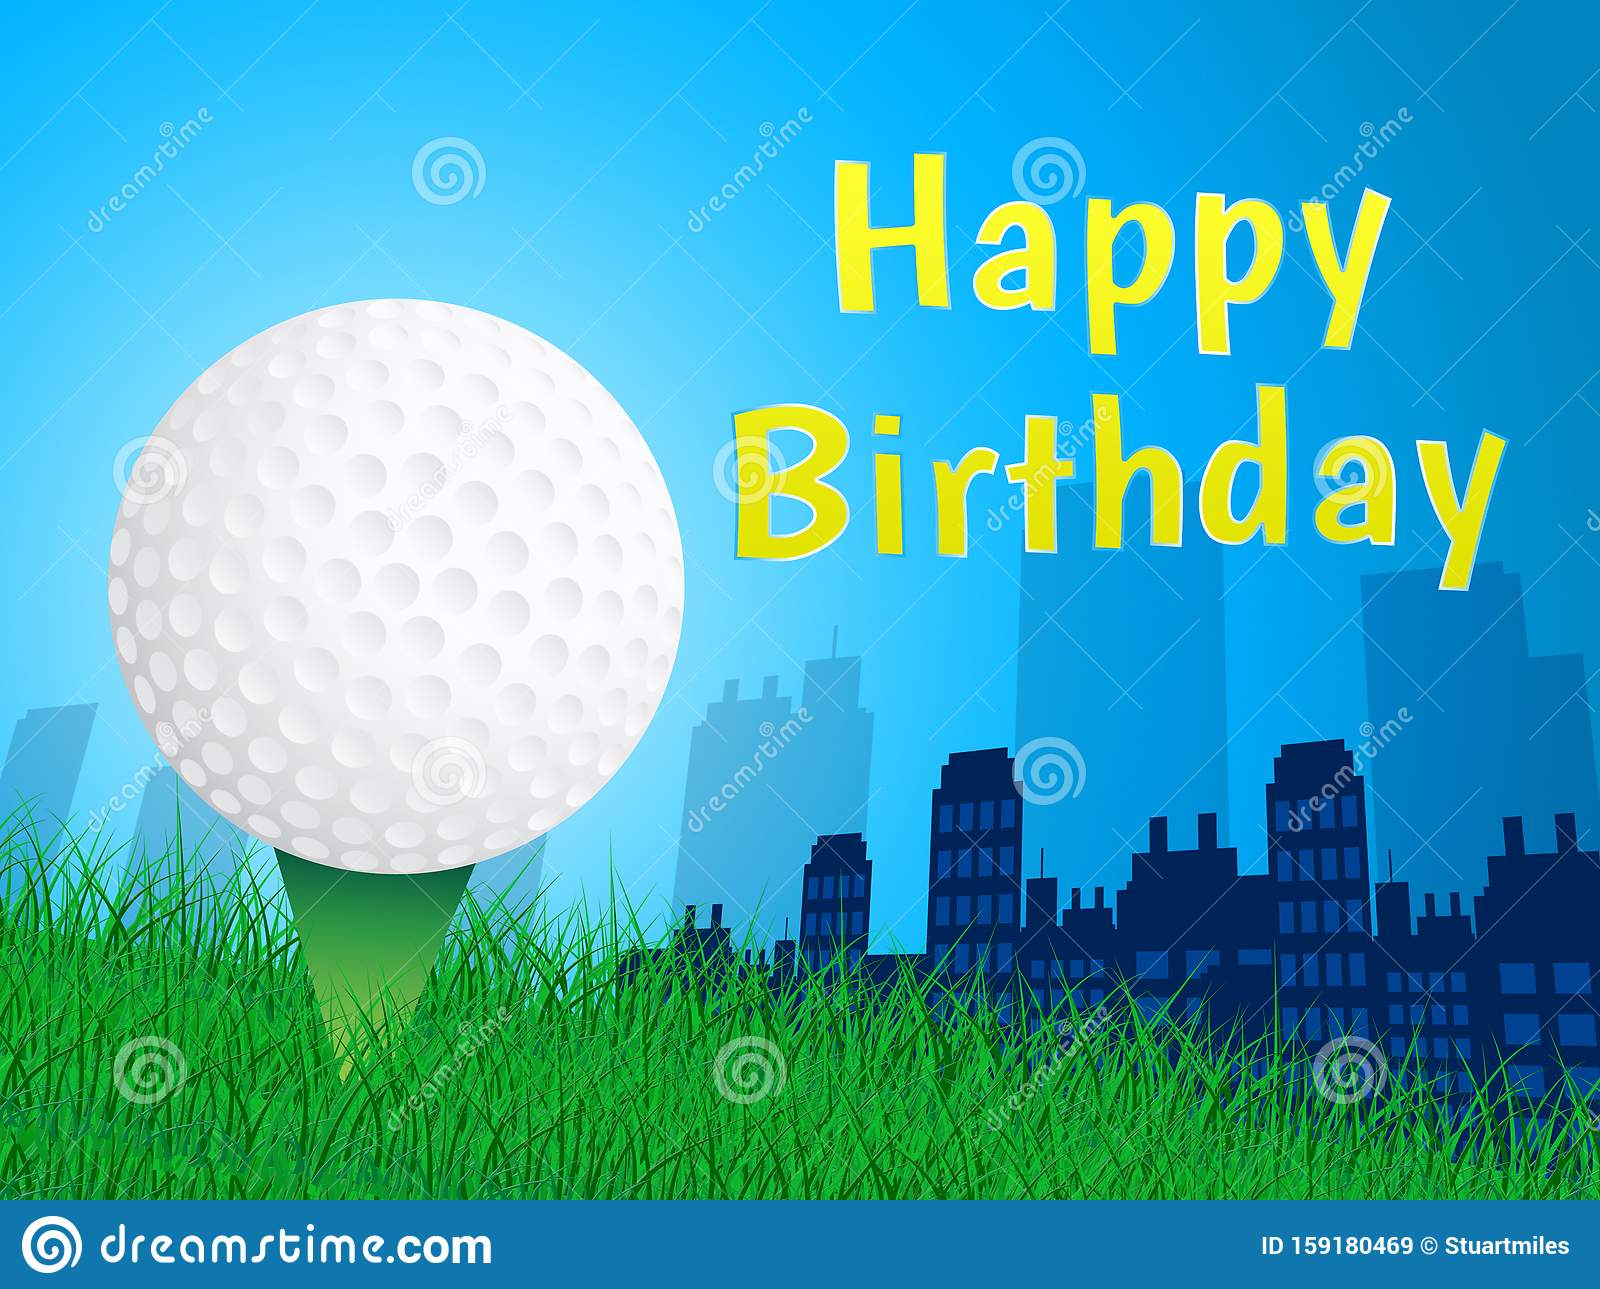 Happy Birthday Golfer Message As Surprise Greeting For Golf Player 3d Illustration Stock Illustration Illustration Of Golfing Message 159180469